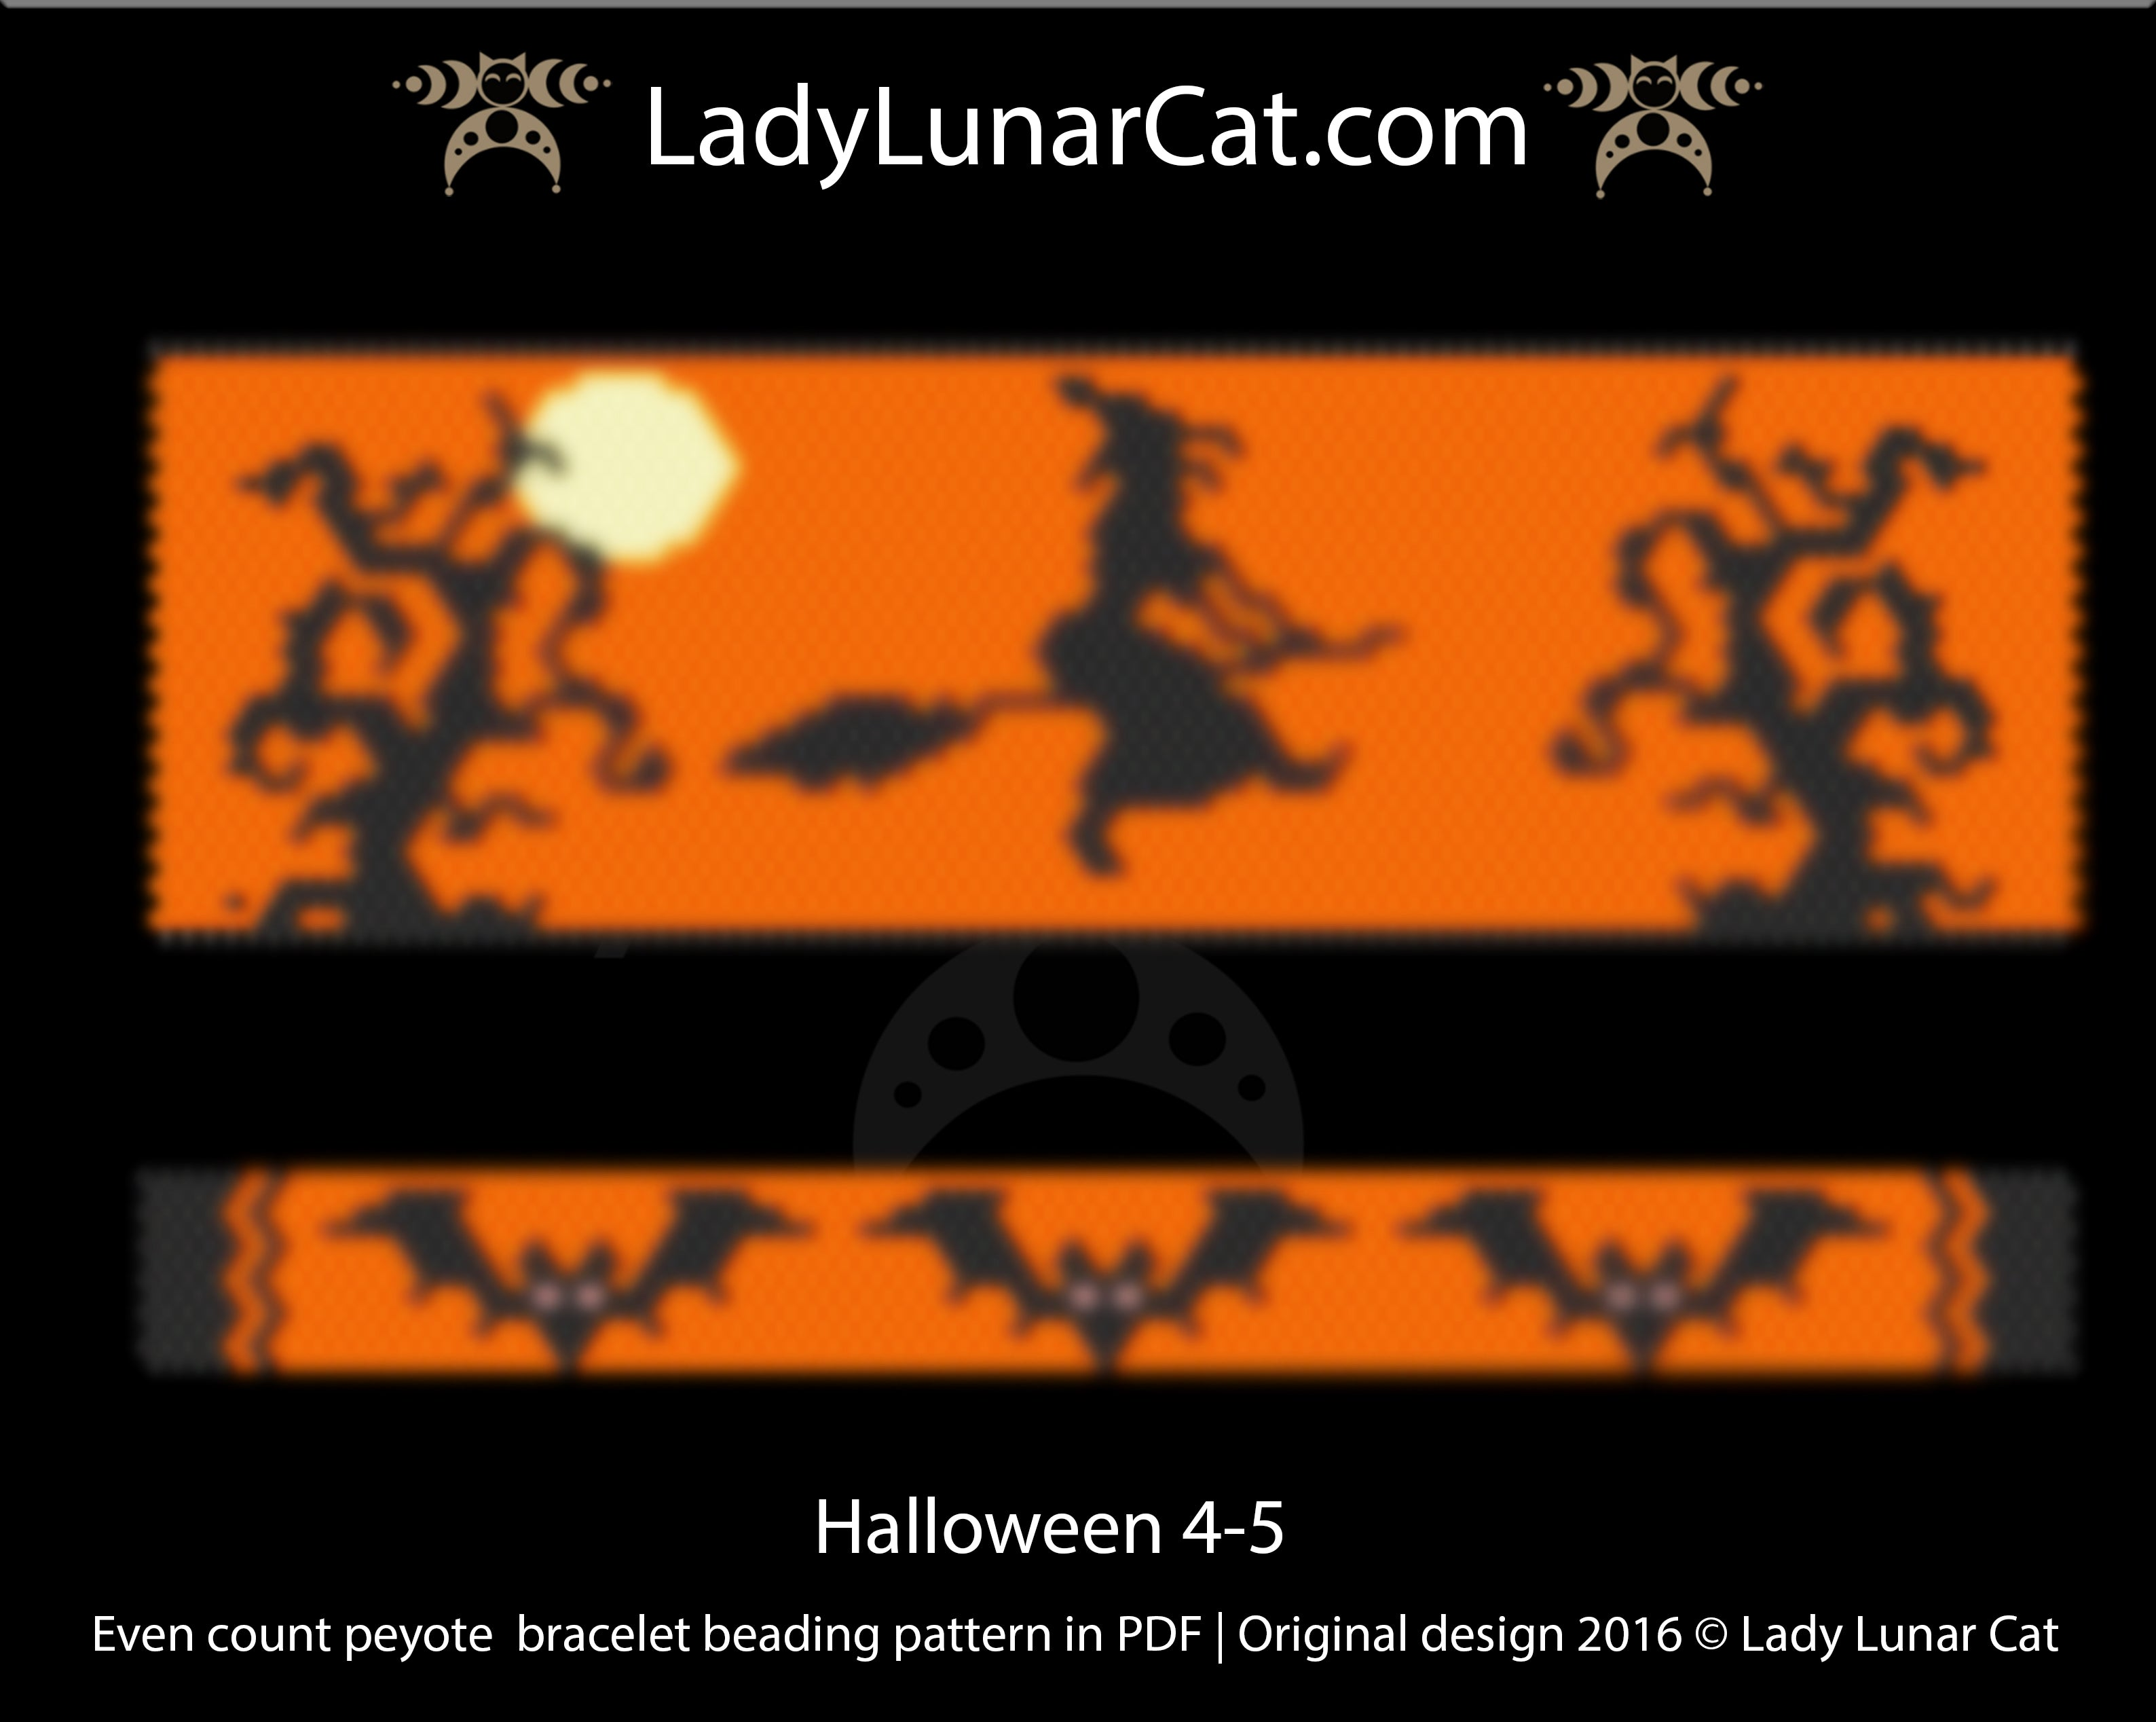 Peyote stitch bracelet pattern | Even count peyote Halloween 4-5 by Lady Lunar Cat